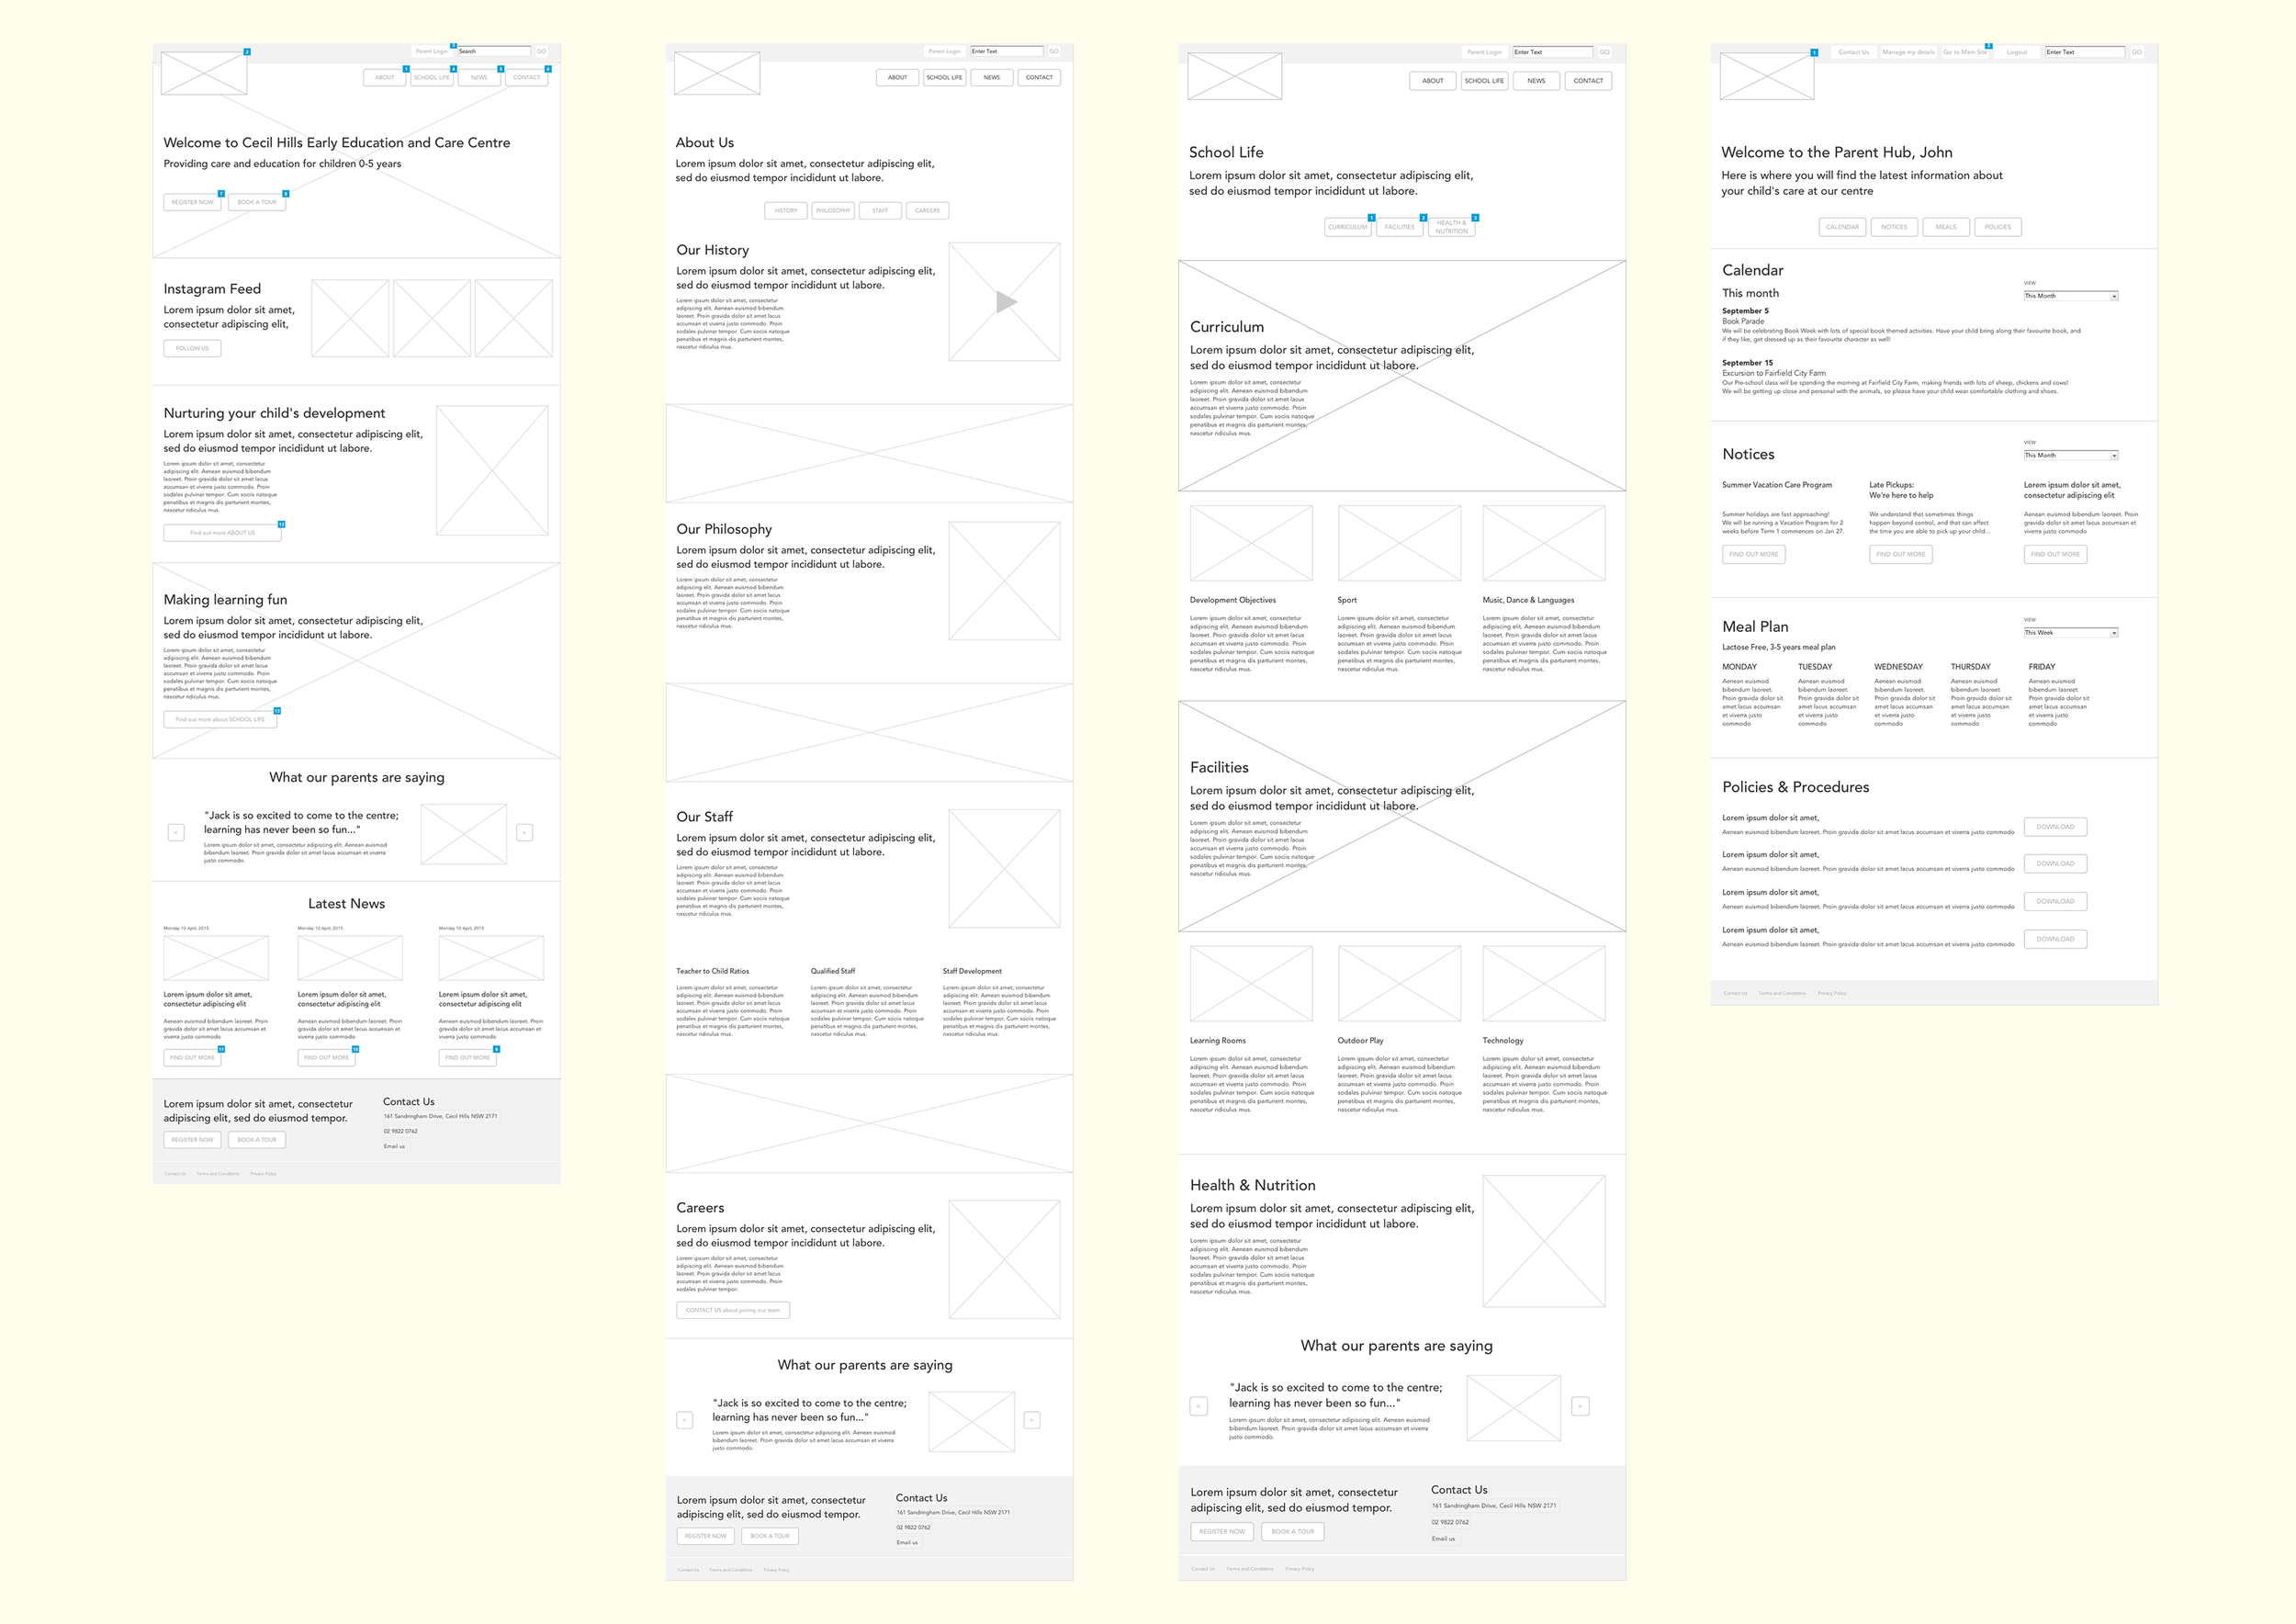 Wireframes for key pages